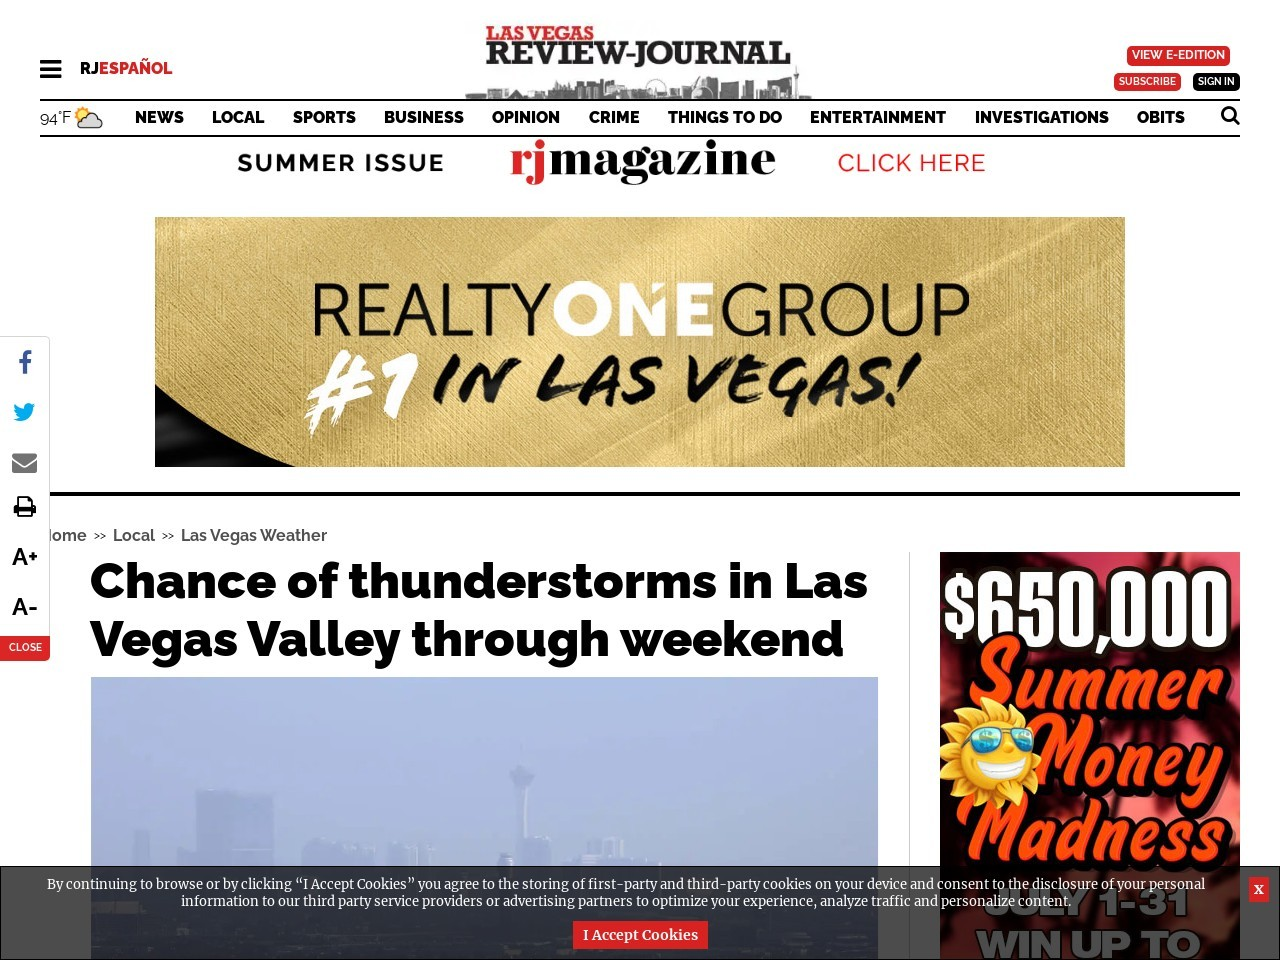 Chance of thunderstorms in Las Vegas Valley through weekend